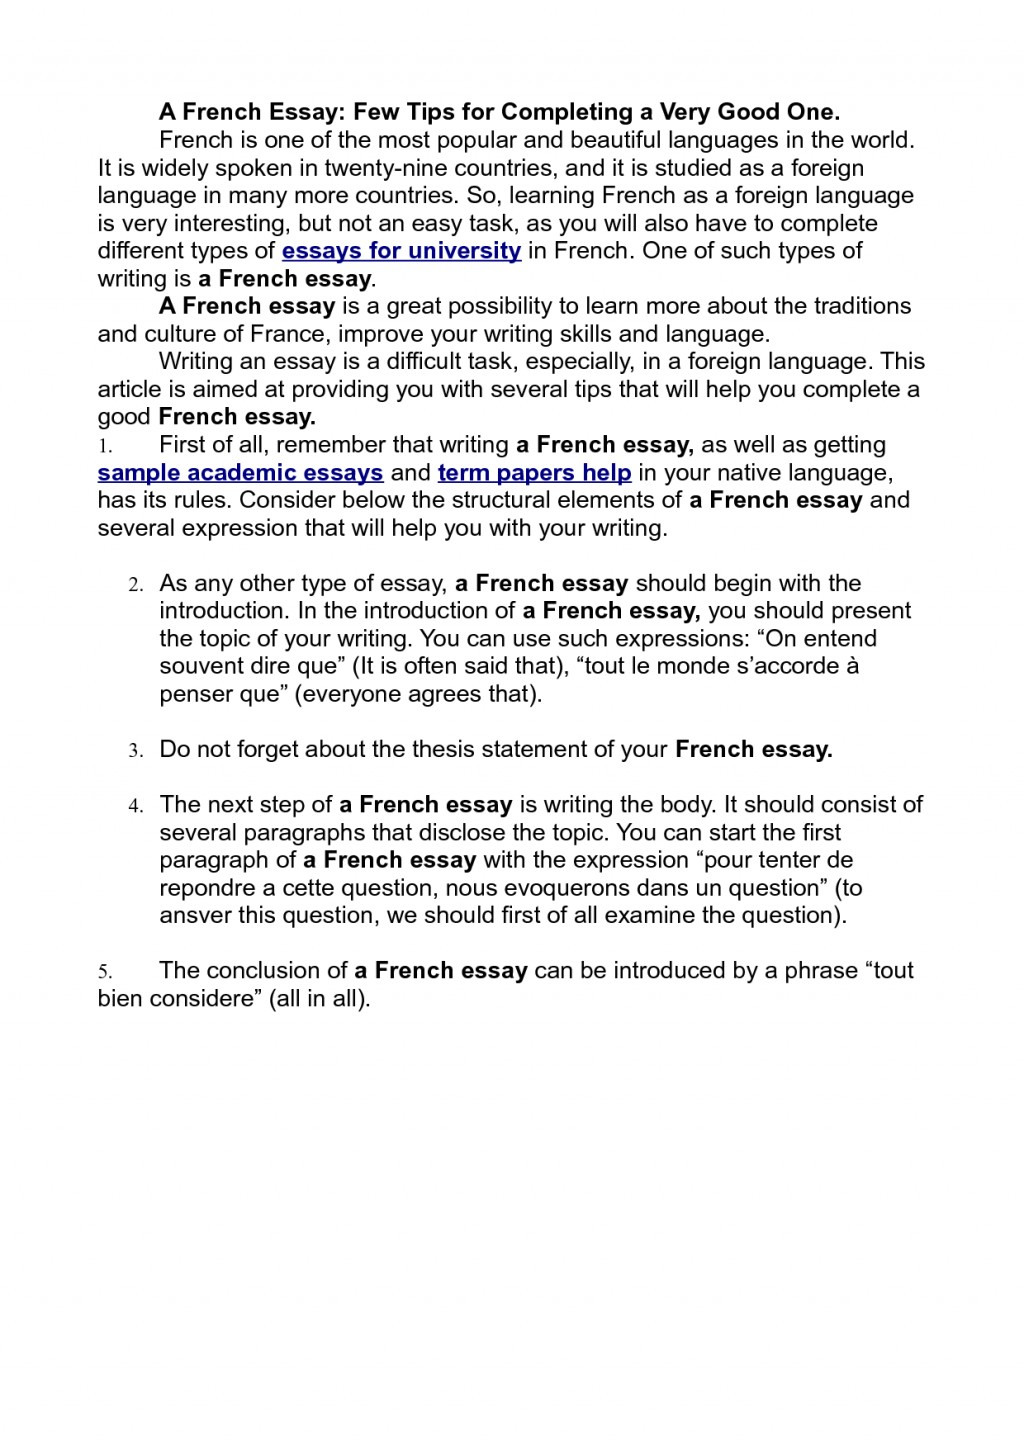 005 Essay In French Example Writing 416011 Frightening Small On My Family Language About Myself Large